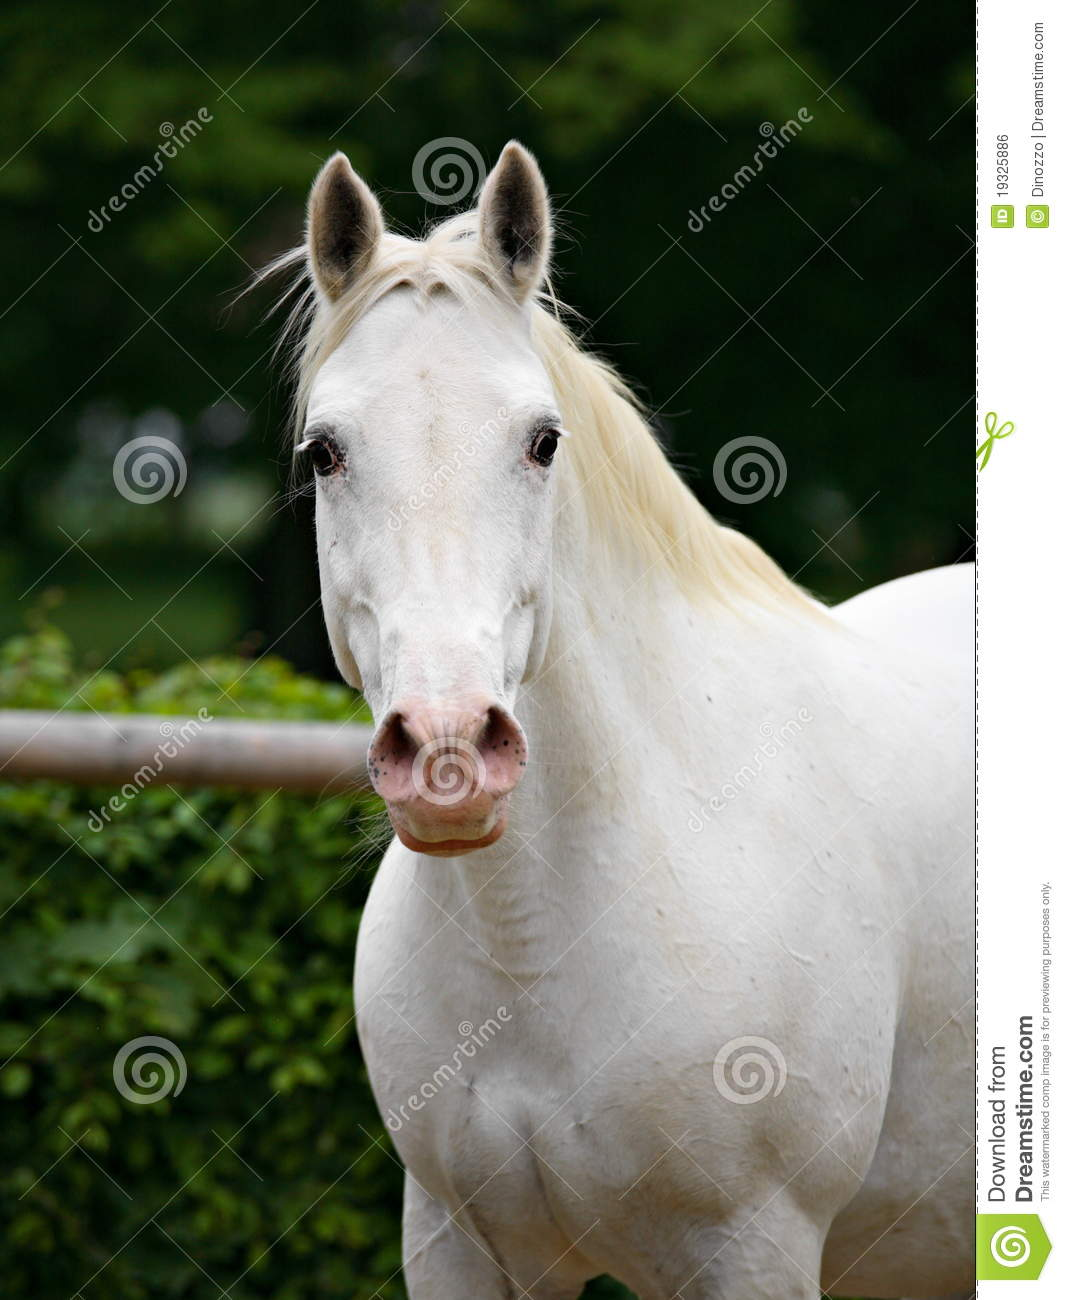 Girl Riding Horse Wallpaper Lipizzan Horse Stock Photo Image Of Friendly Face Mare